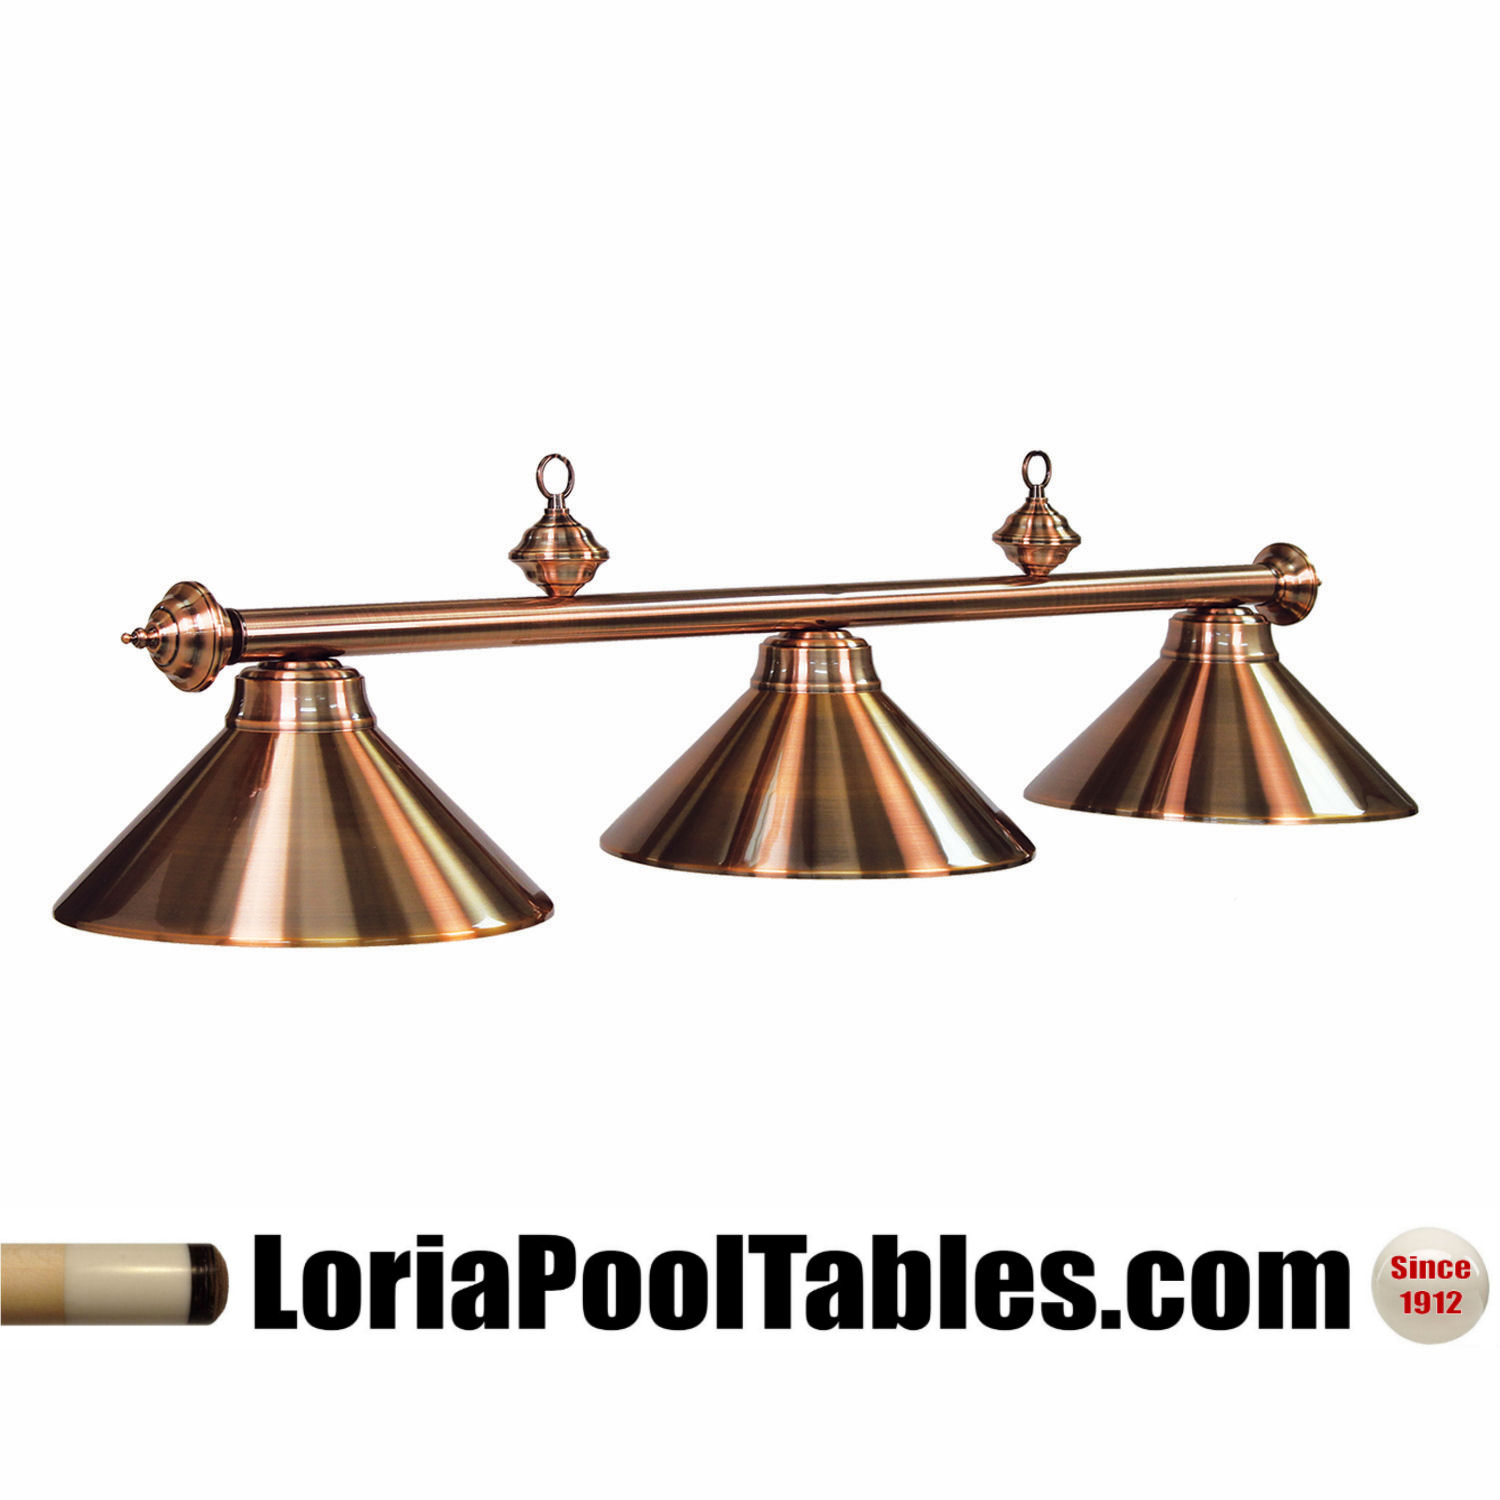 54'' Metal Shade Antique Copper Finish Pool Table Light